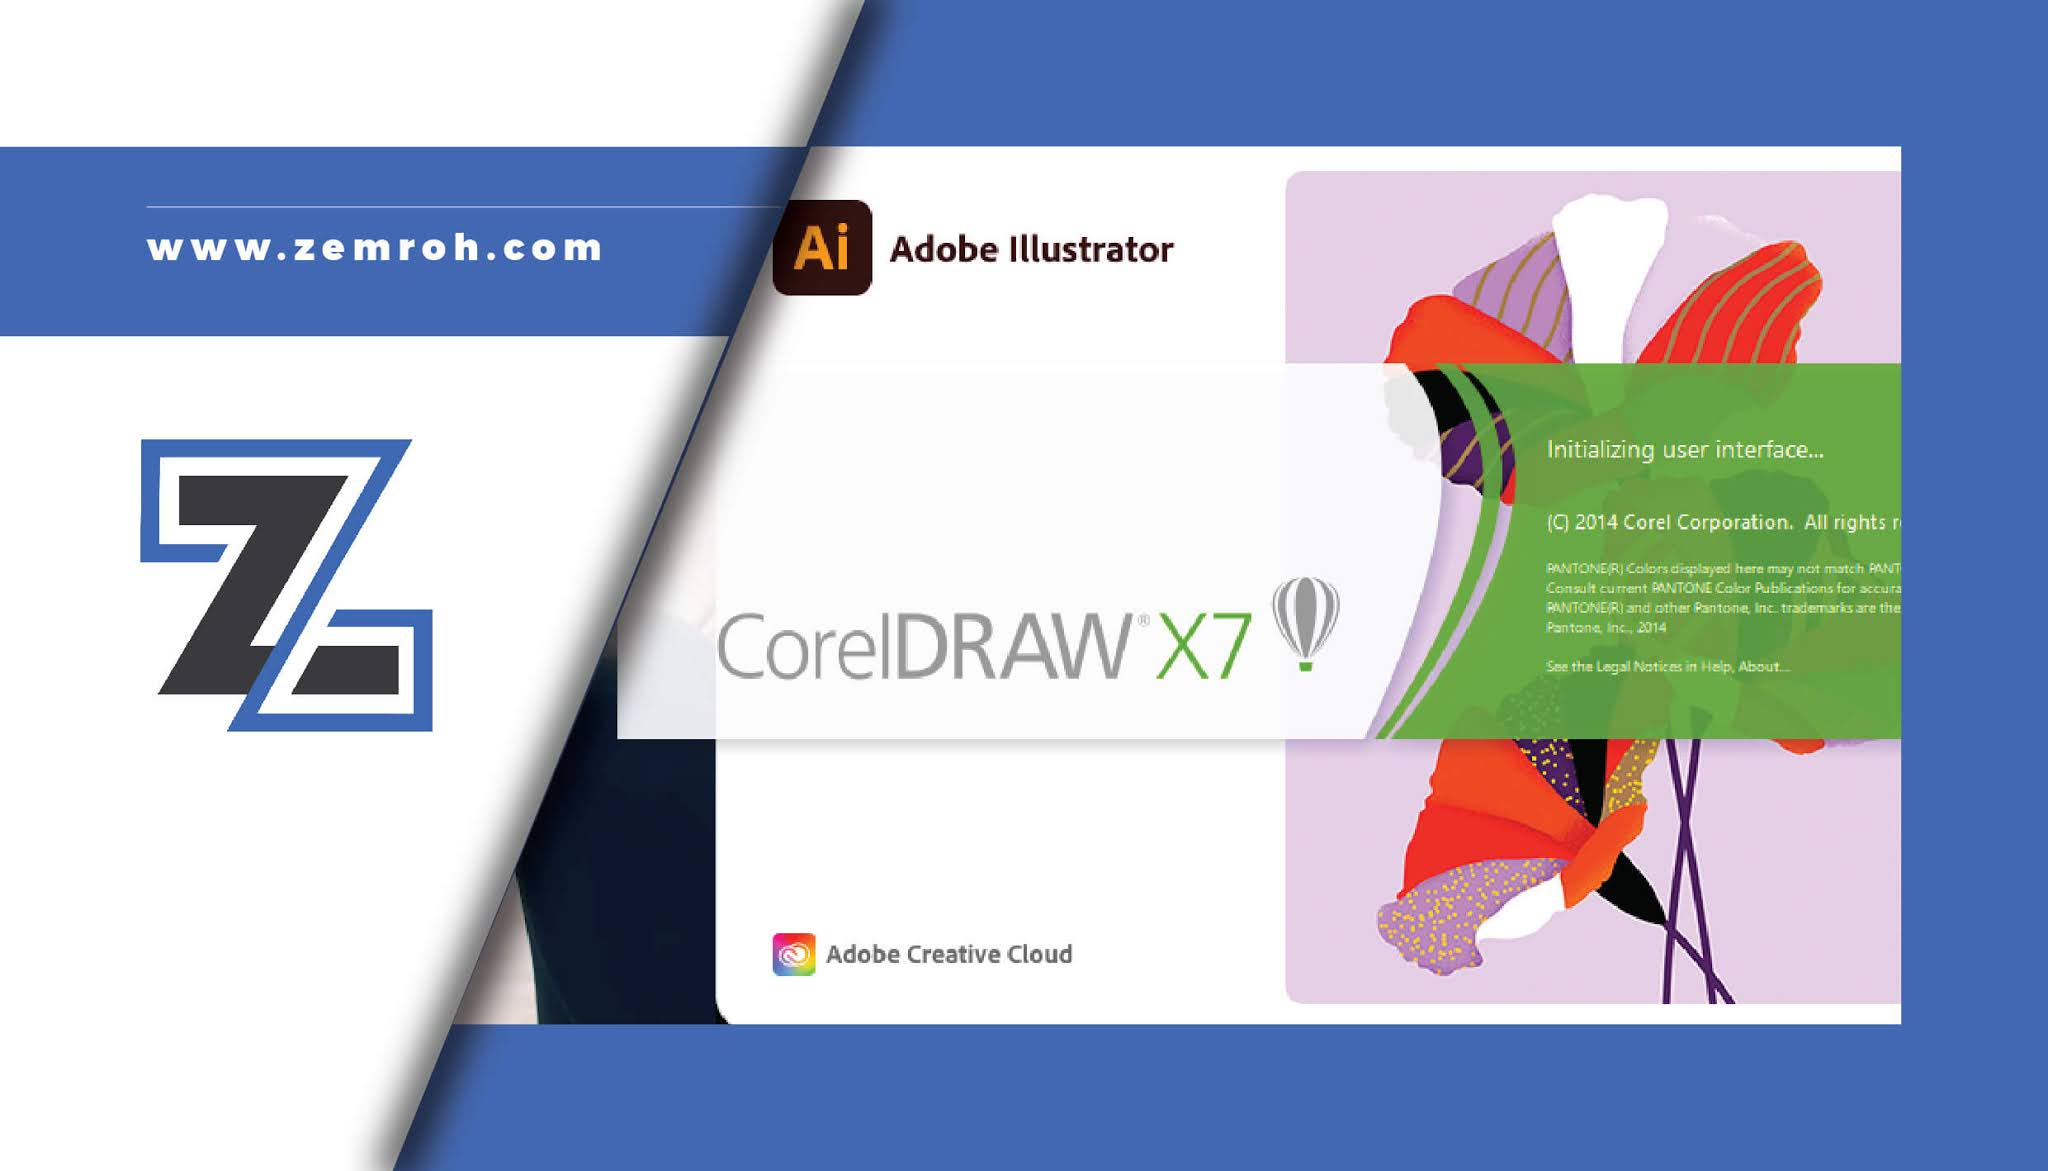 Importing Adobe Illustrator (AI), PhotoShop (PSD) and PDF files into CorelDRAW